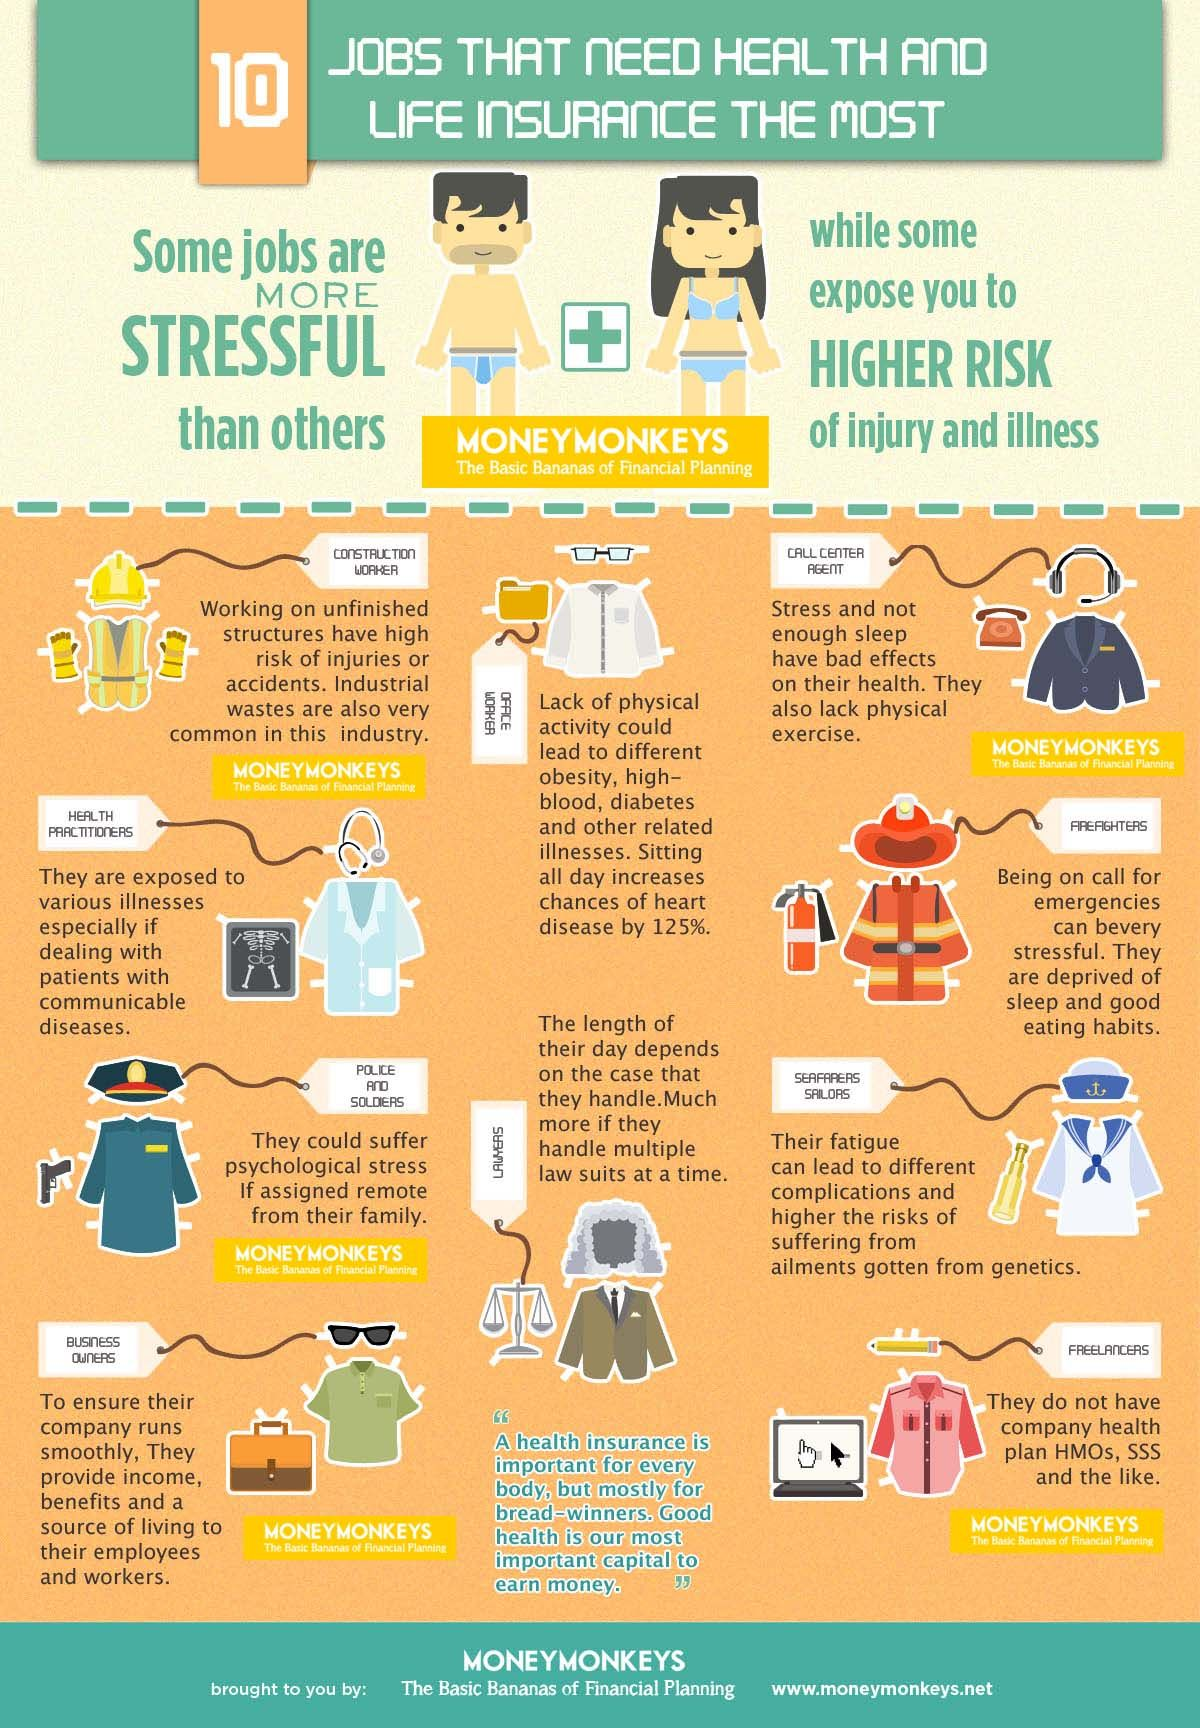 10 Jobs That Need Life And Health Insurance The Most Life And Health Insurance Baby Health Health Insurance Infographic